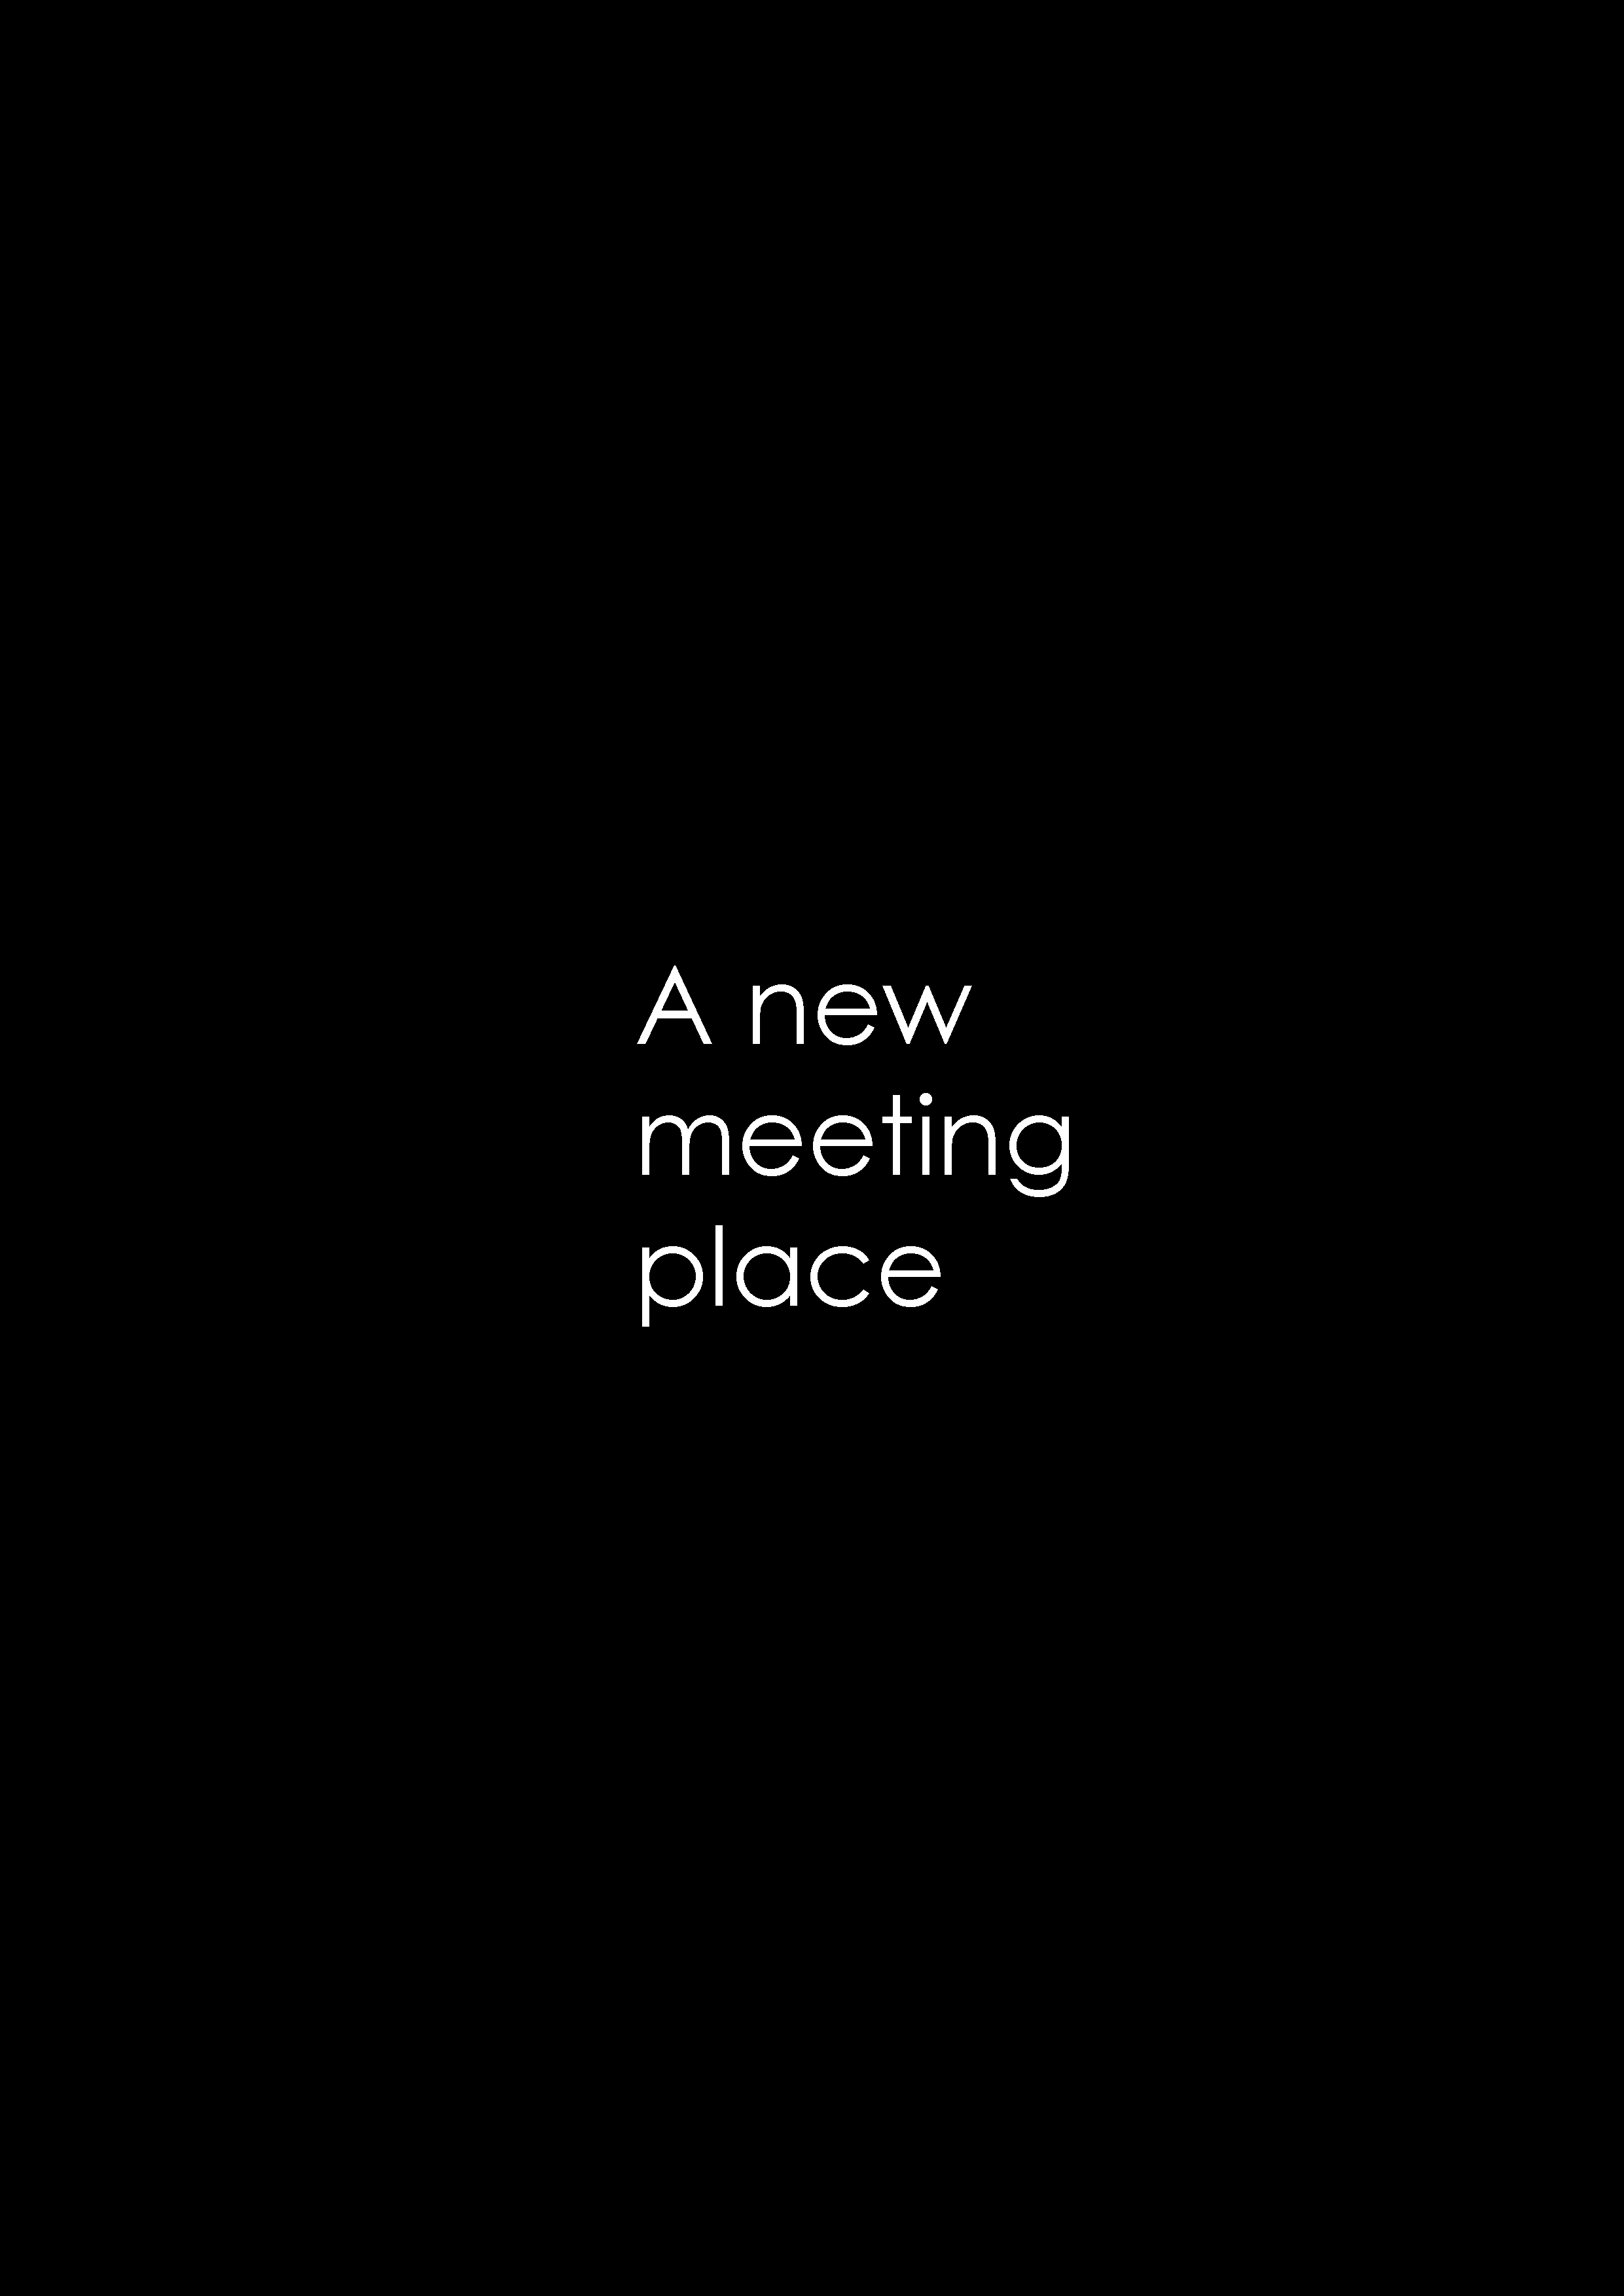 A meeting place.